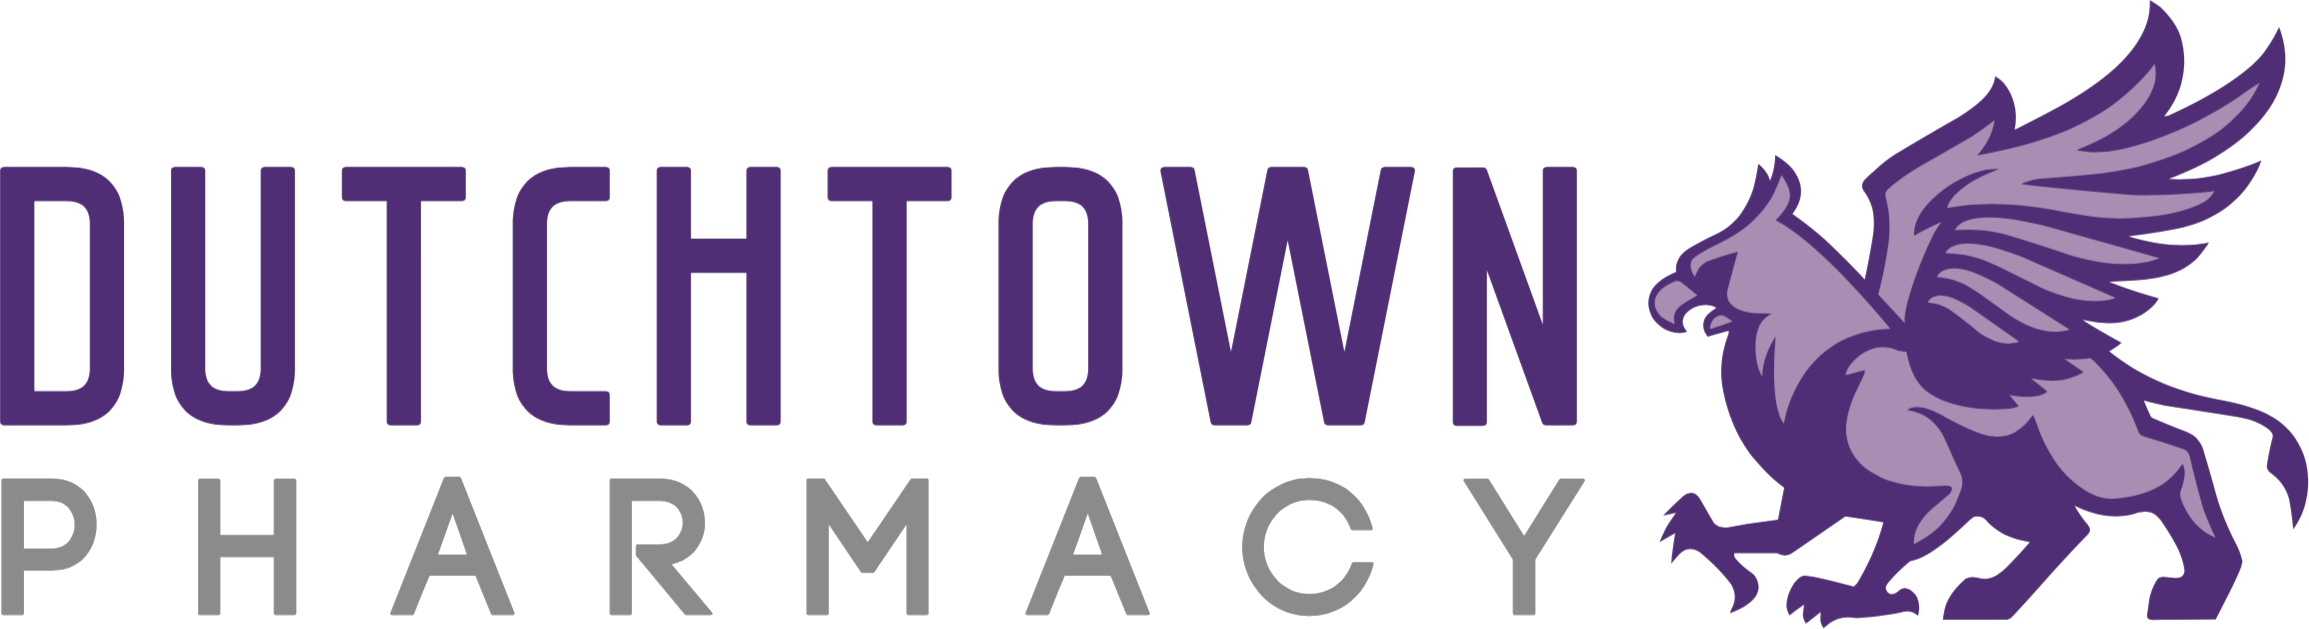 Dutchtown Pharmacy